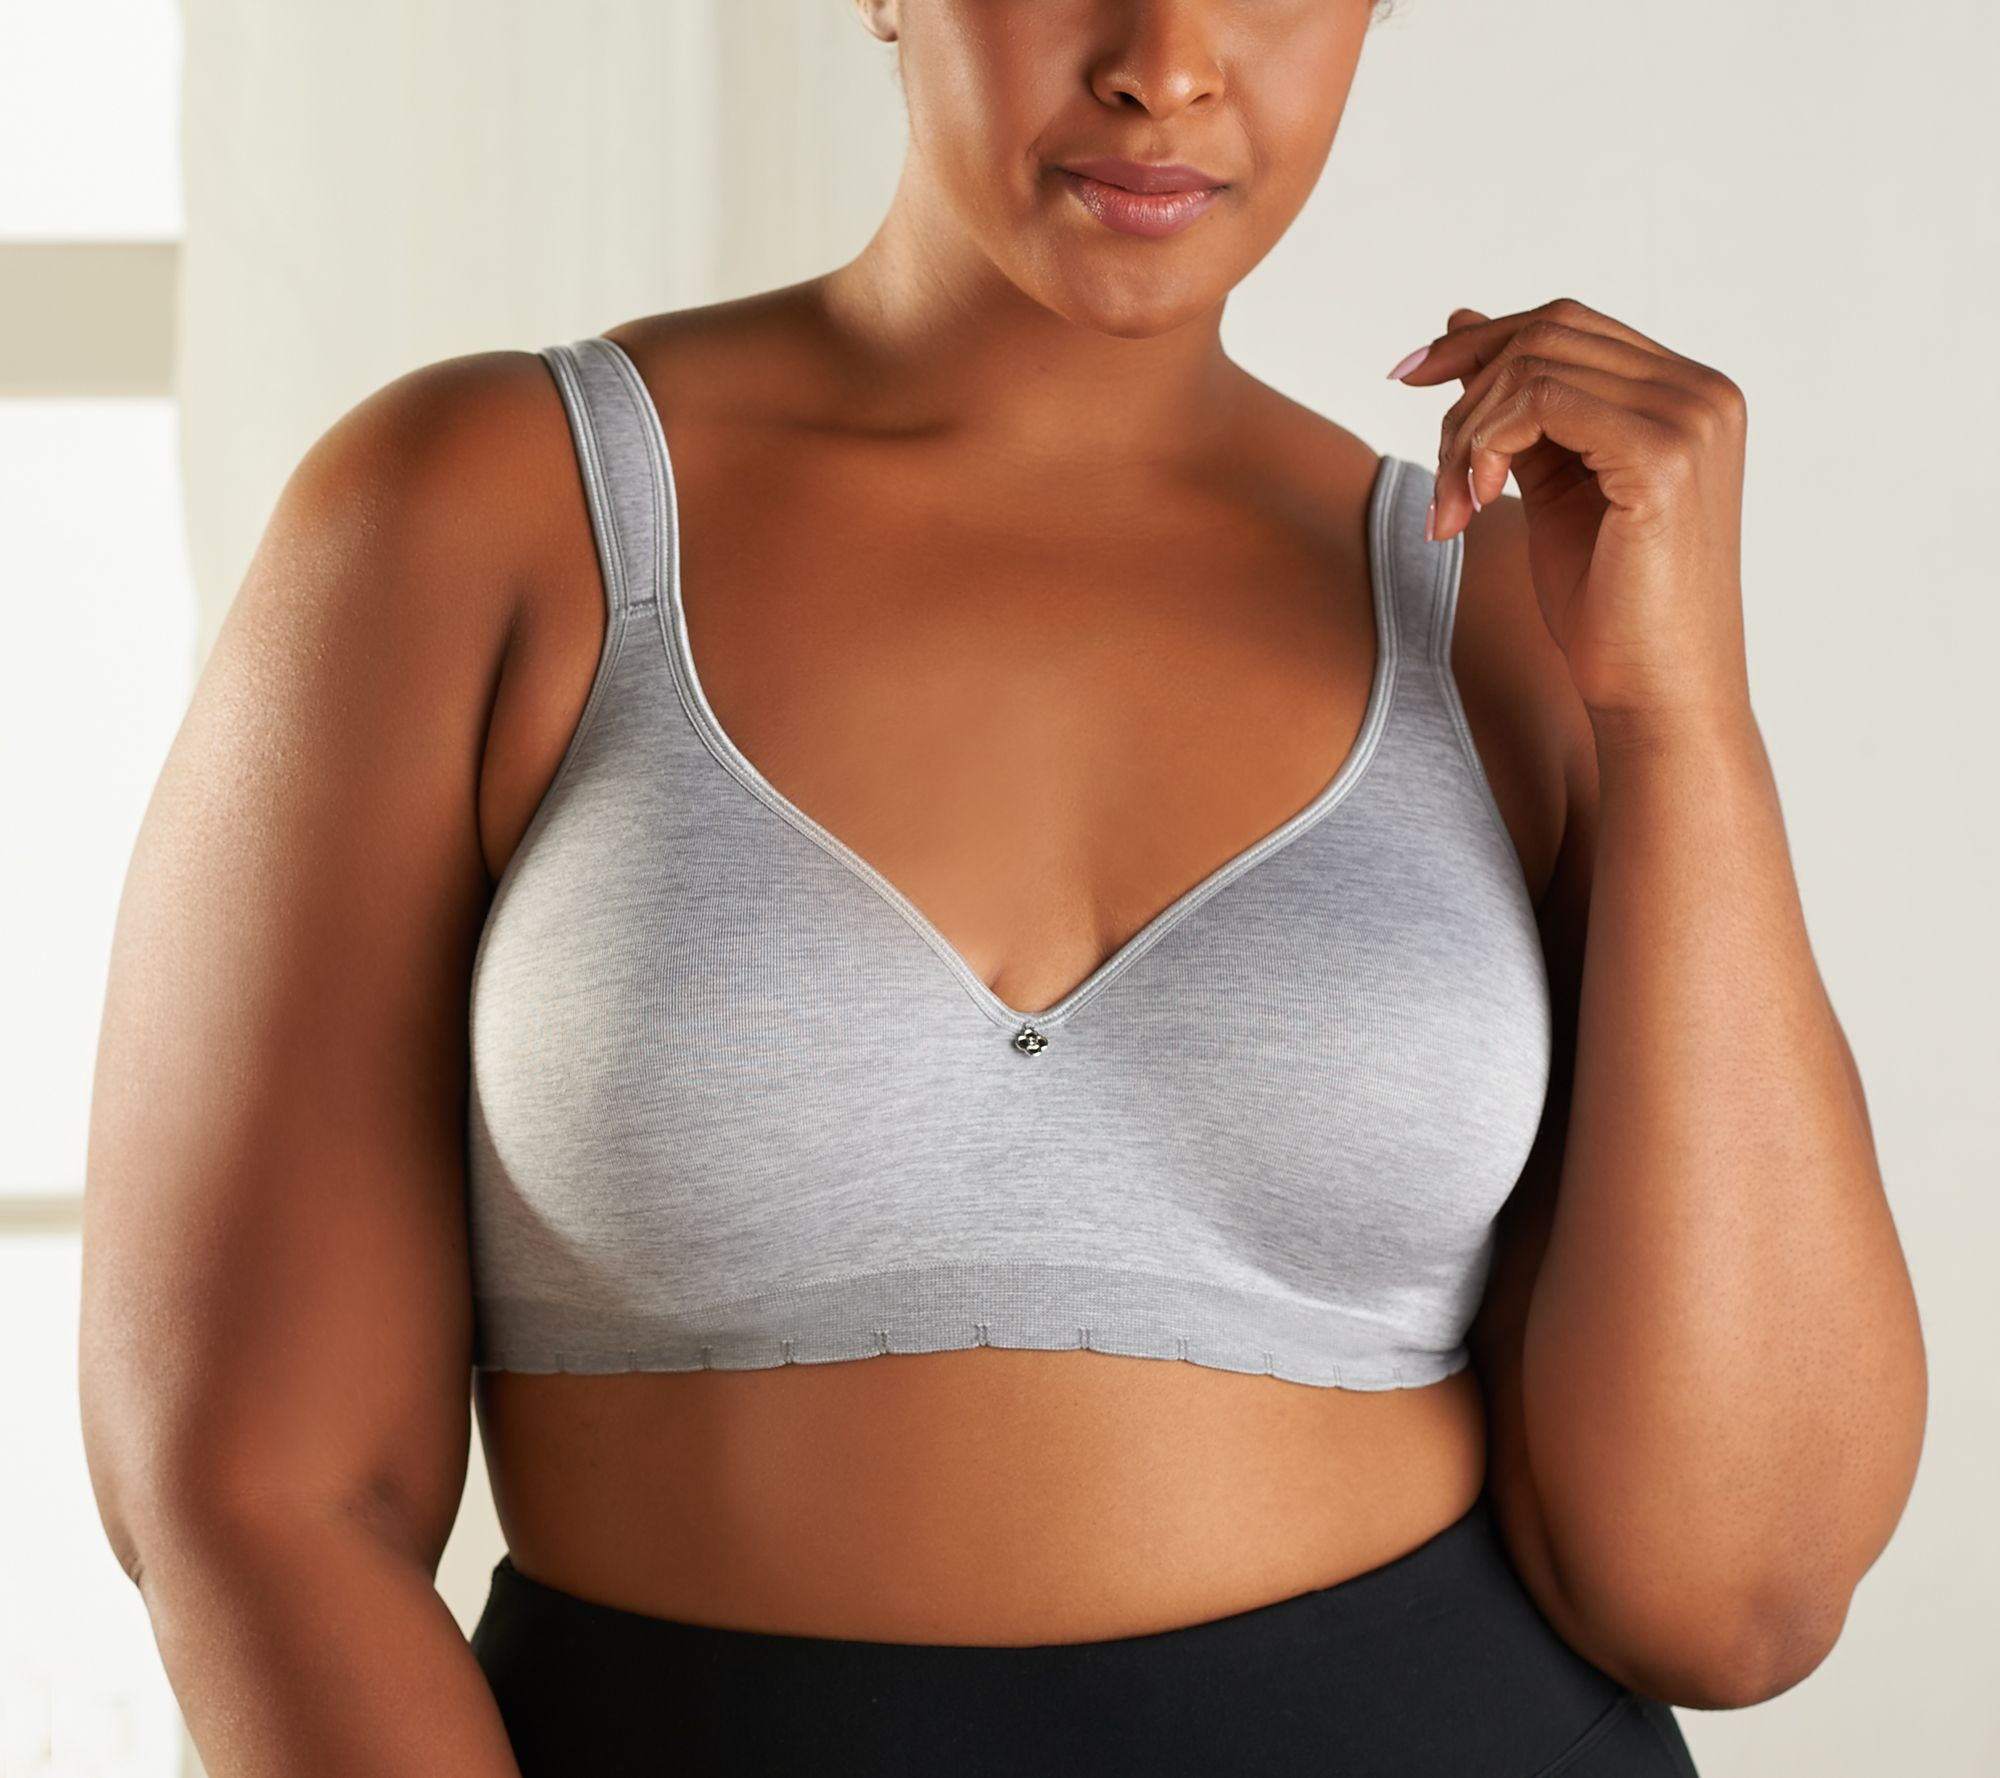 6079feada4458 Breezies Seamless Comfort Underwire T-Shirt Bra - Page 1 — QVC.com